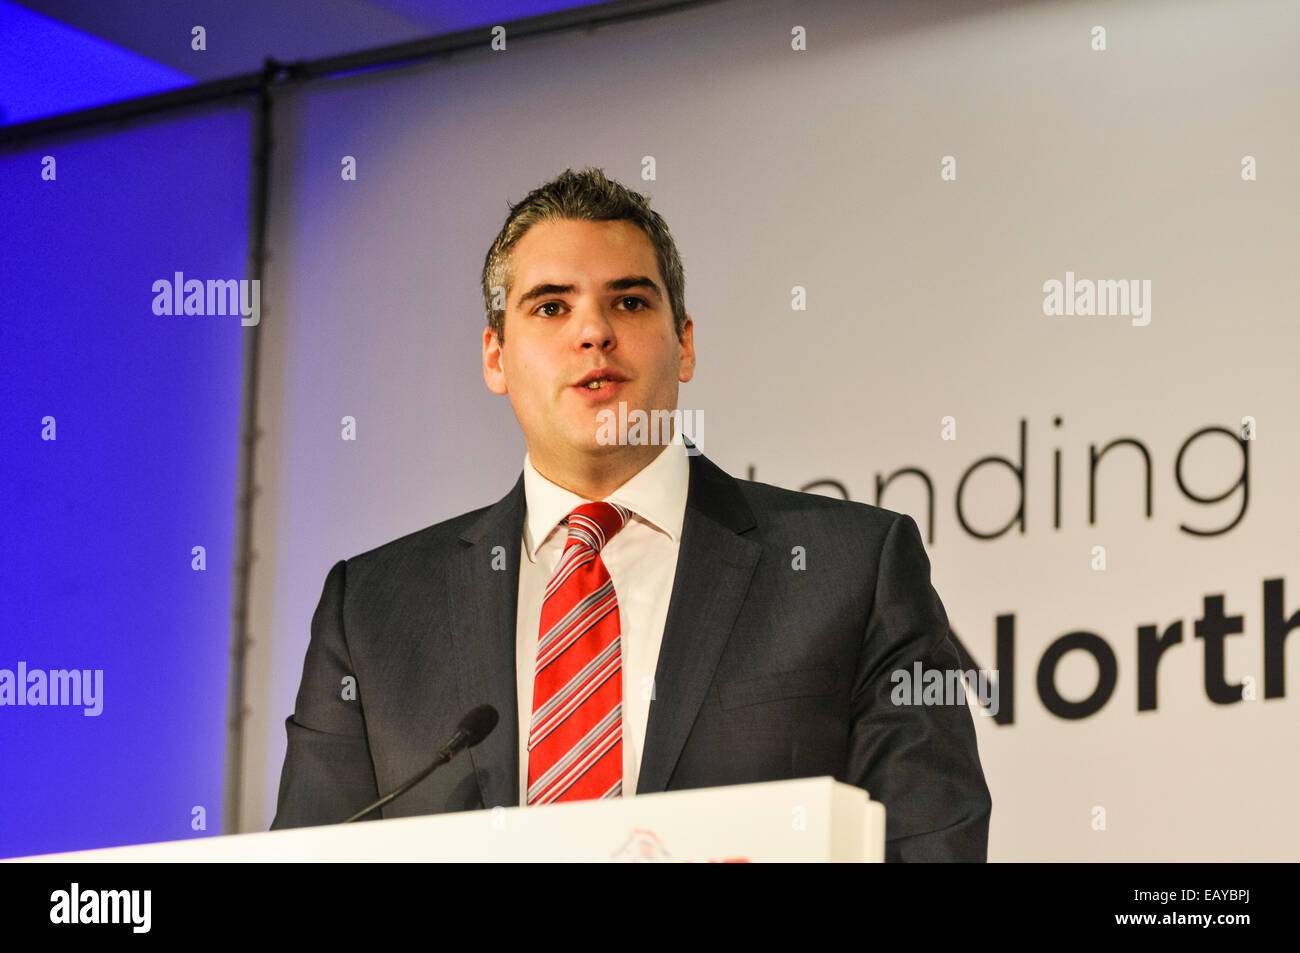 Belfast, Northern Ireland. 22nd Nov 2014. - Alderman Gavin Robinson addresses the DUP conference 2014 after being - Stock Image